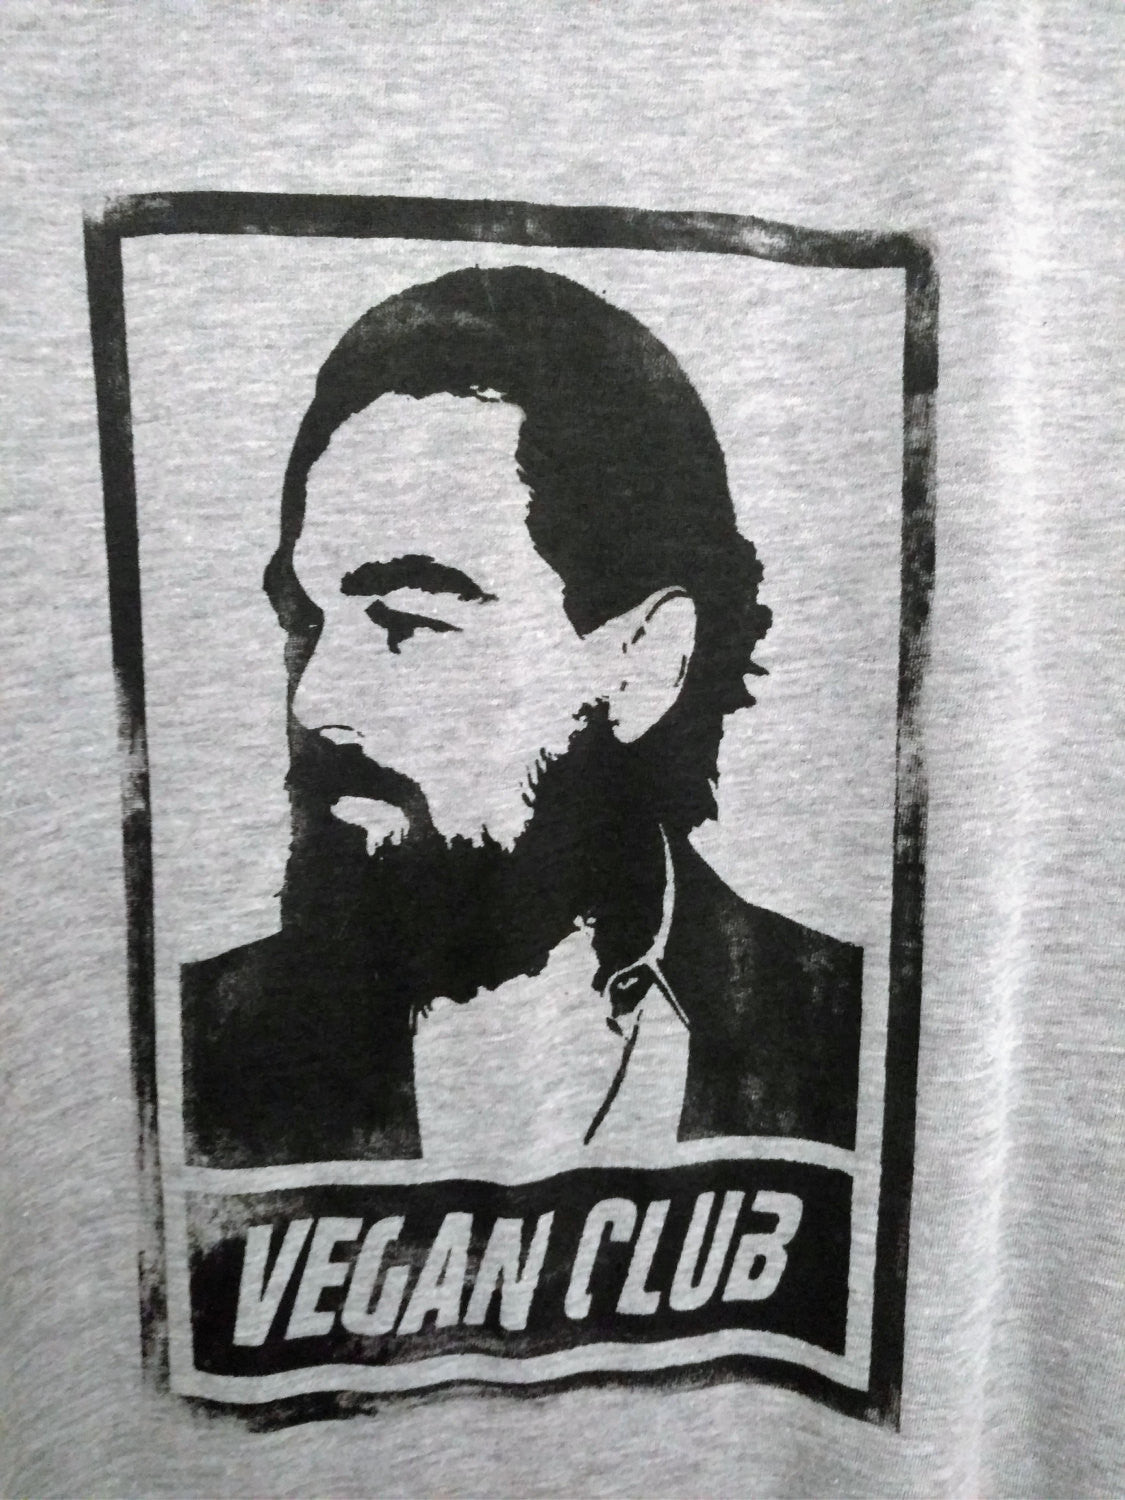 "Unisex T-shirt ""Vegan Club"" featuring Leonardo Di Caprio Handmade art by L3F0u - model @fettlevegan"